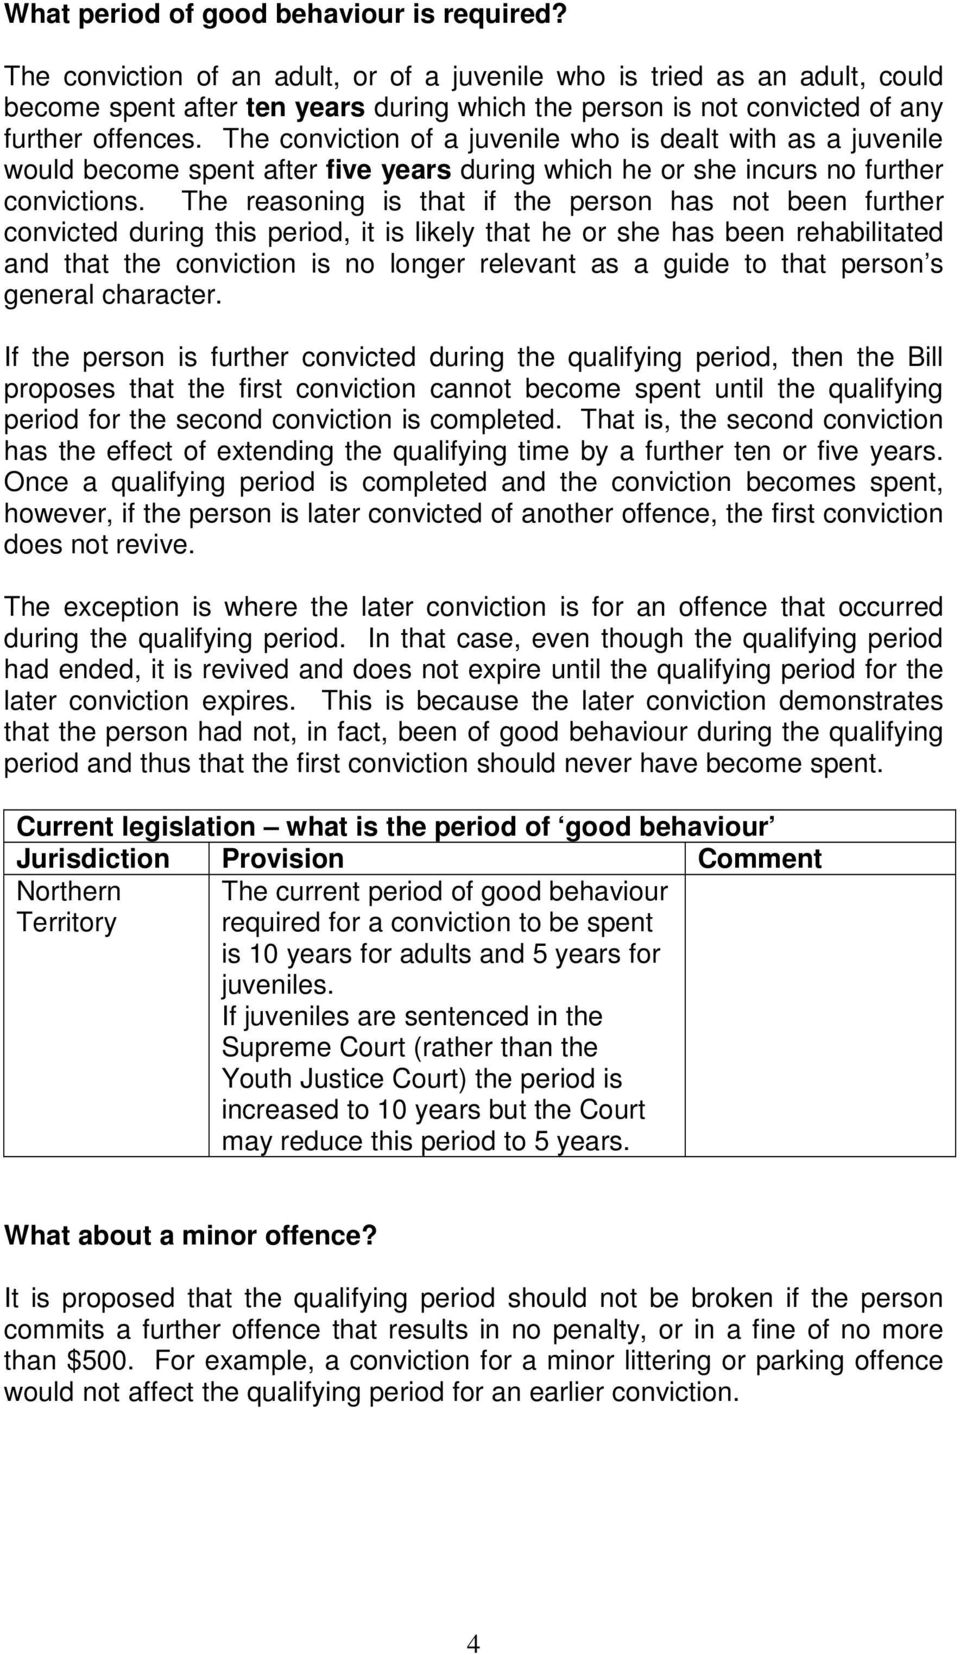 The conviction of a juvenile who is dealt with as a juvenile would become spent after five years during which he or she incurs no further convictions.